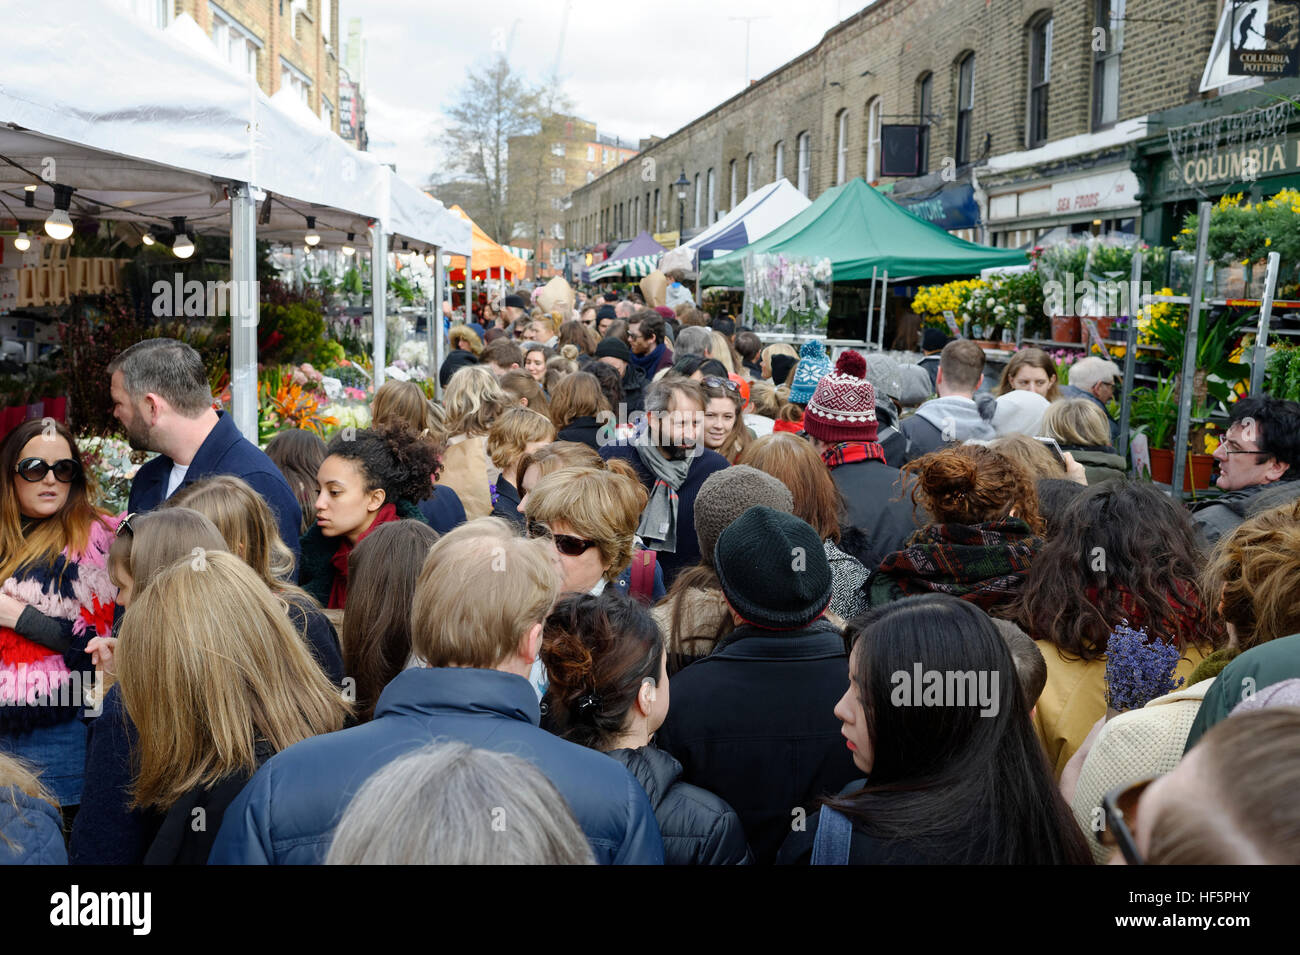 Crowds of people make Colombia Road flower market in East London a very congested place on Sunday mornings. - Stock Image